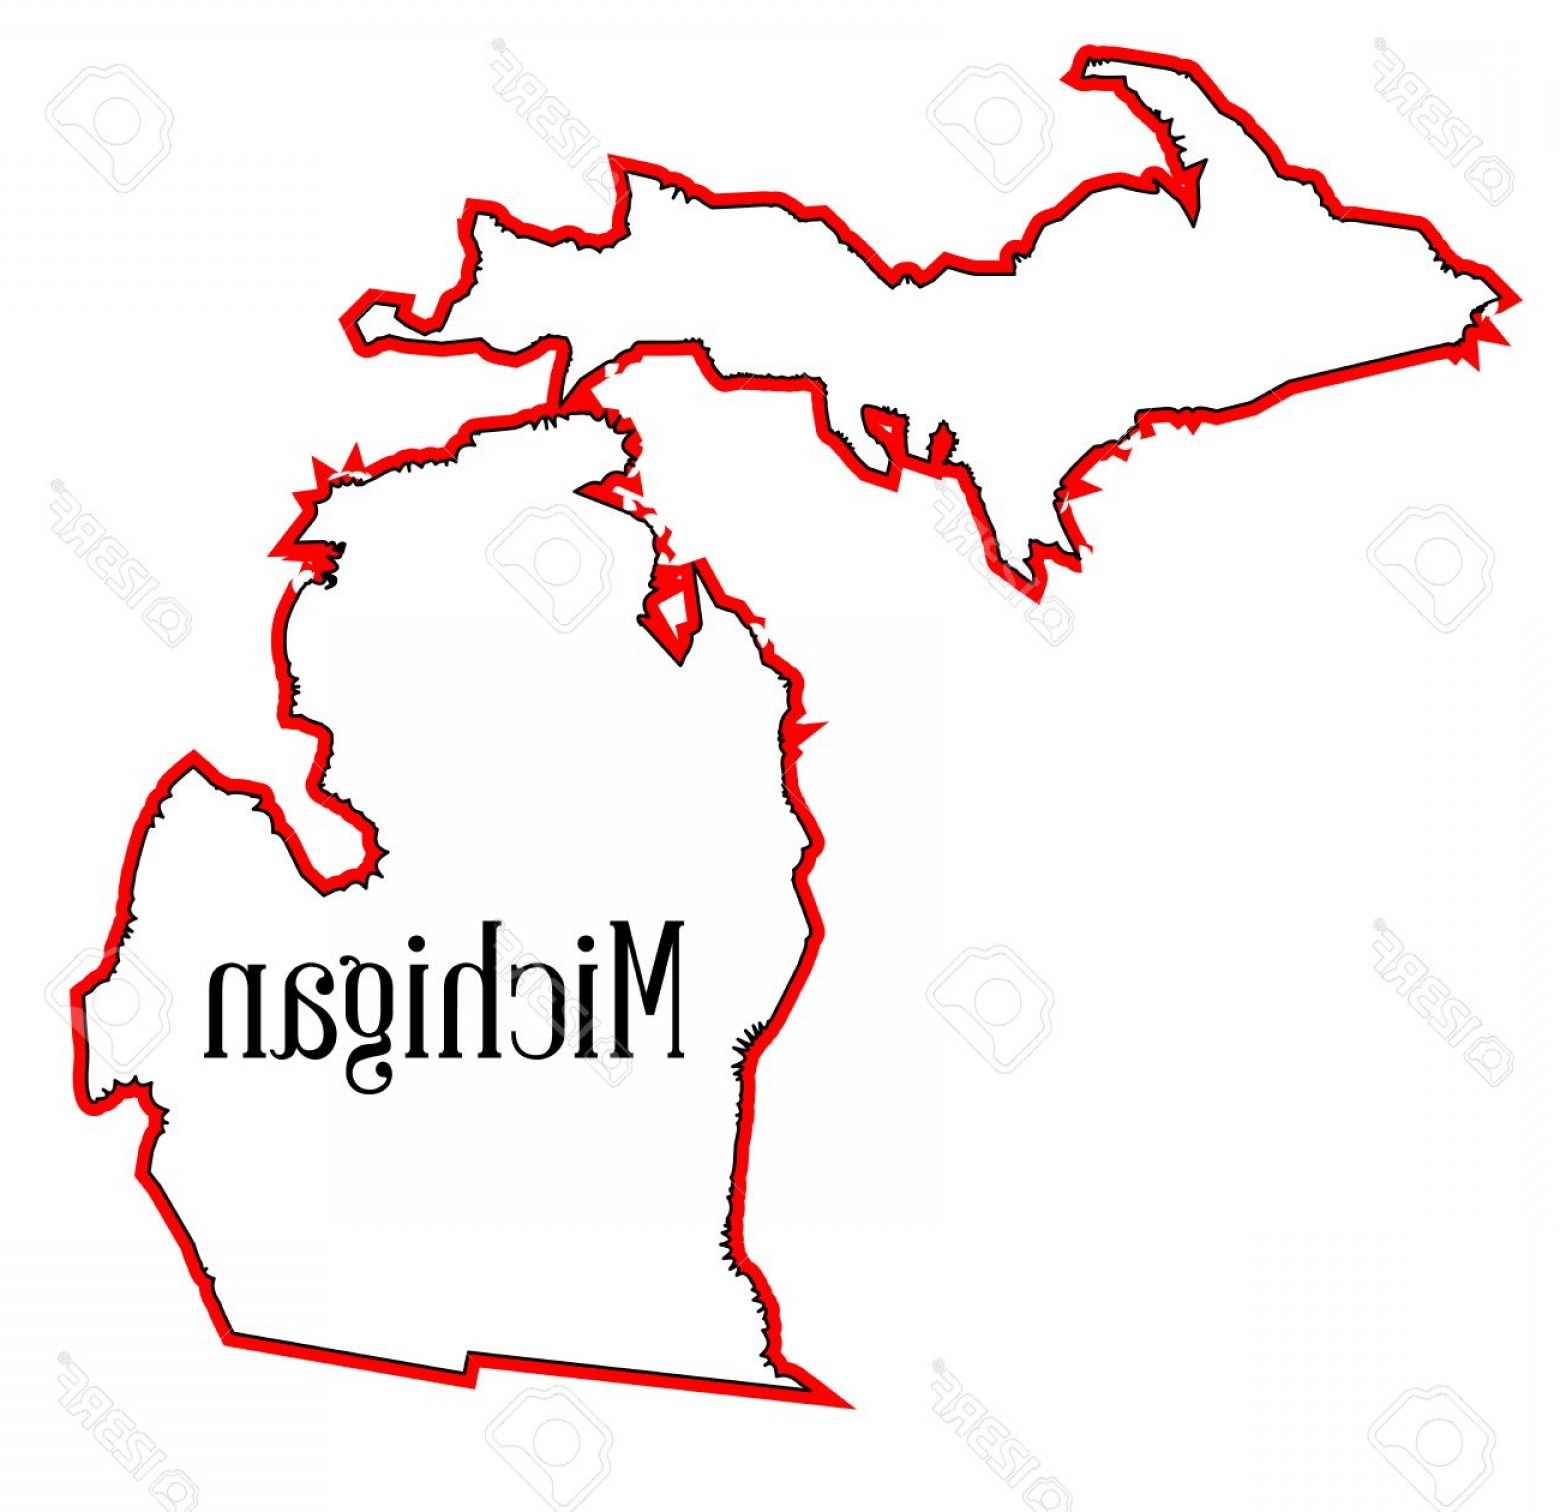 Michigan Vector Artwork: Photostock Vector Outline Map Of The State Of Michigan